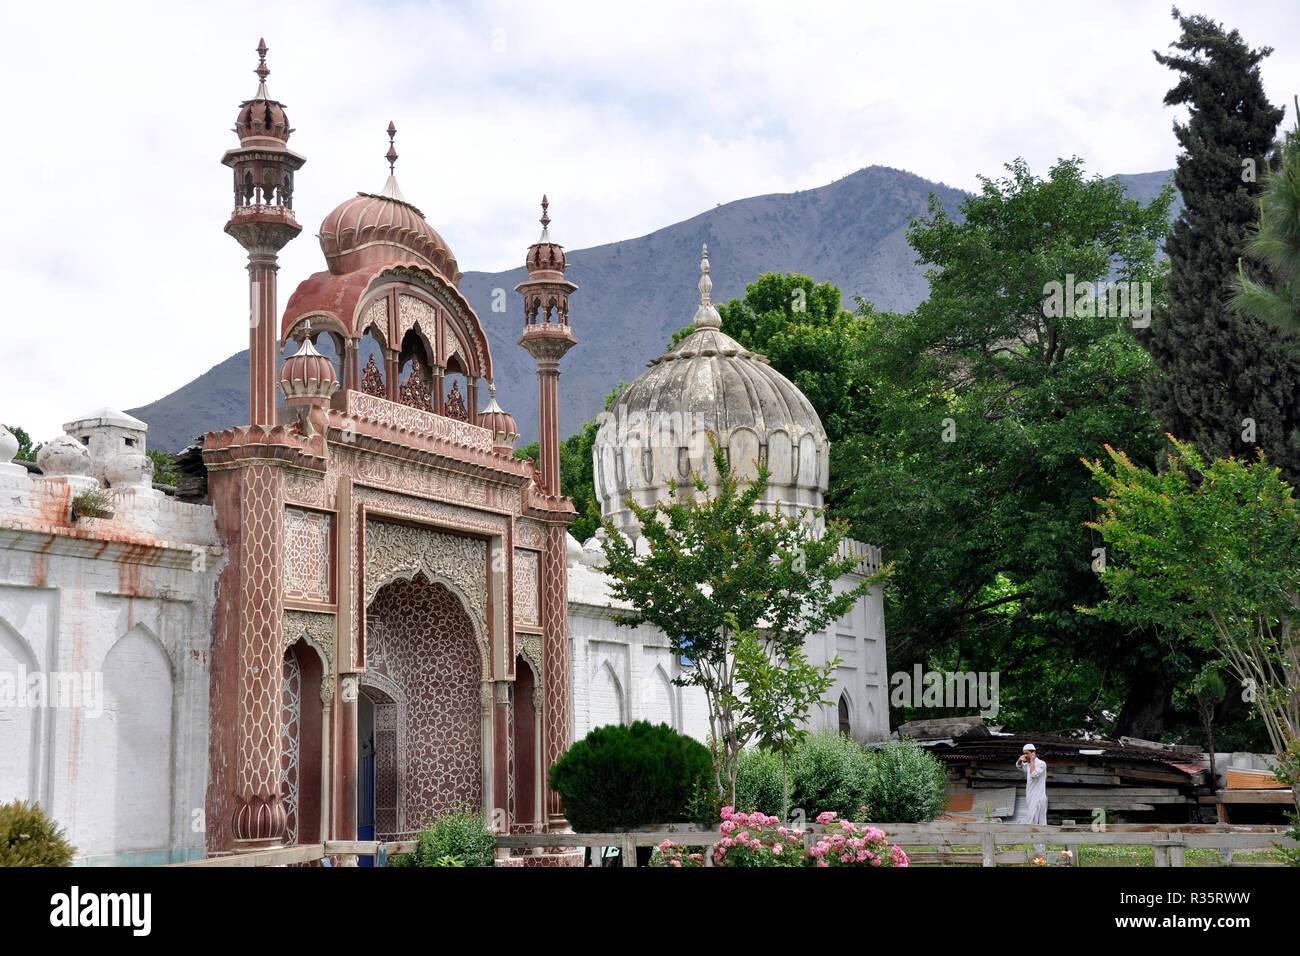 Pakistan, Chitral mosque - Stock Image